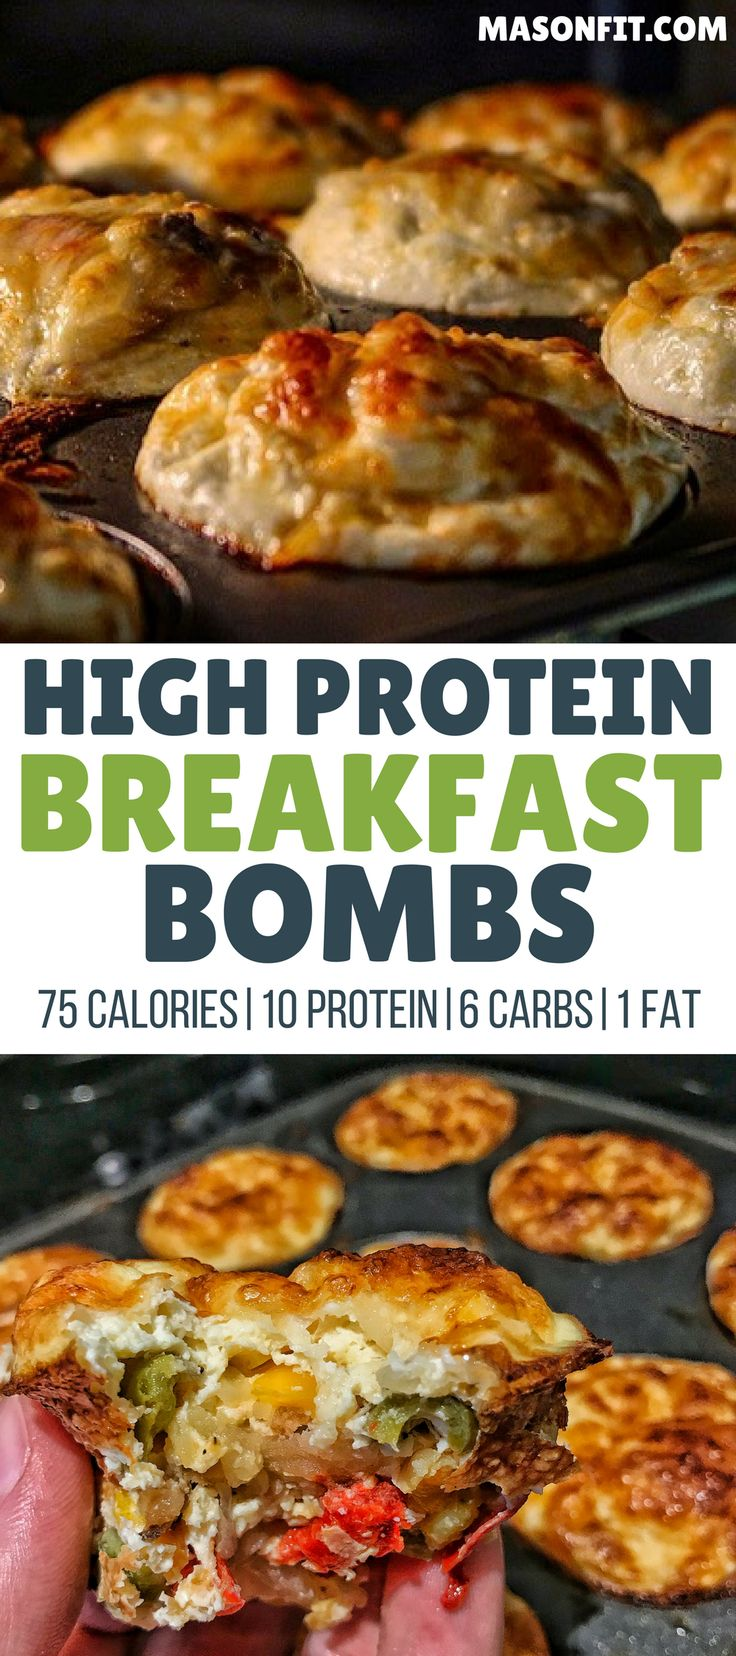 A high protein breakfast recipe that's as easy as adding ingredients to a muffin tin! Recipe includes both sausage and meatless options. Only 75 calories per breakfast bomb!